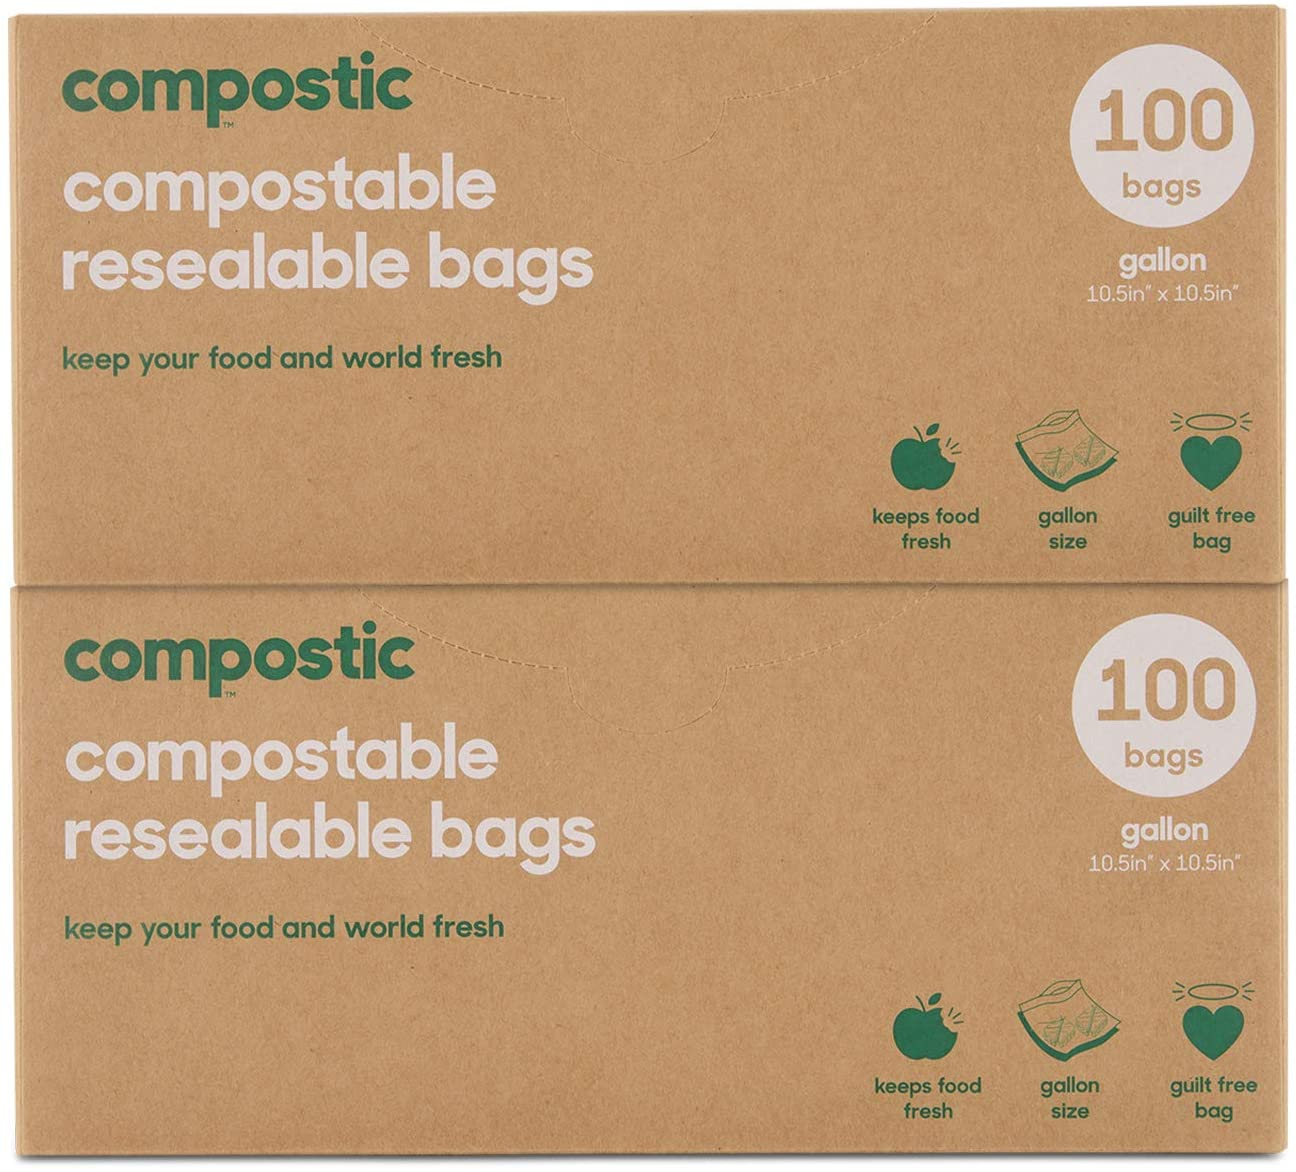 Compostic Home Compostable Resealable Gallon Bags - Eco Friendly, Reusable, Zero Waste, Non-Toxic, Guilt-Free - Plastic Alternative for Earth Friendly Food Storage - (10.5